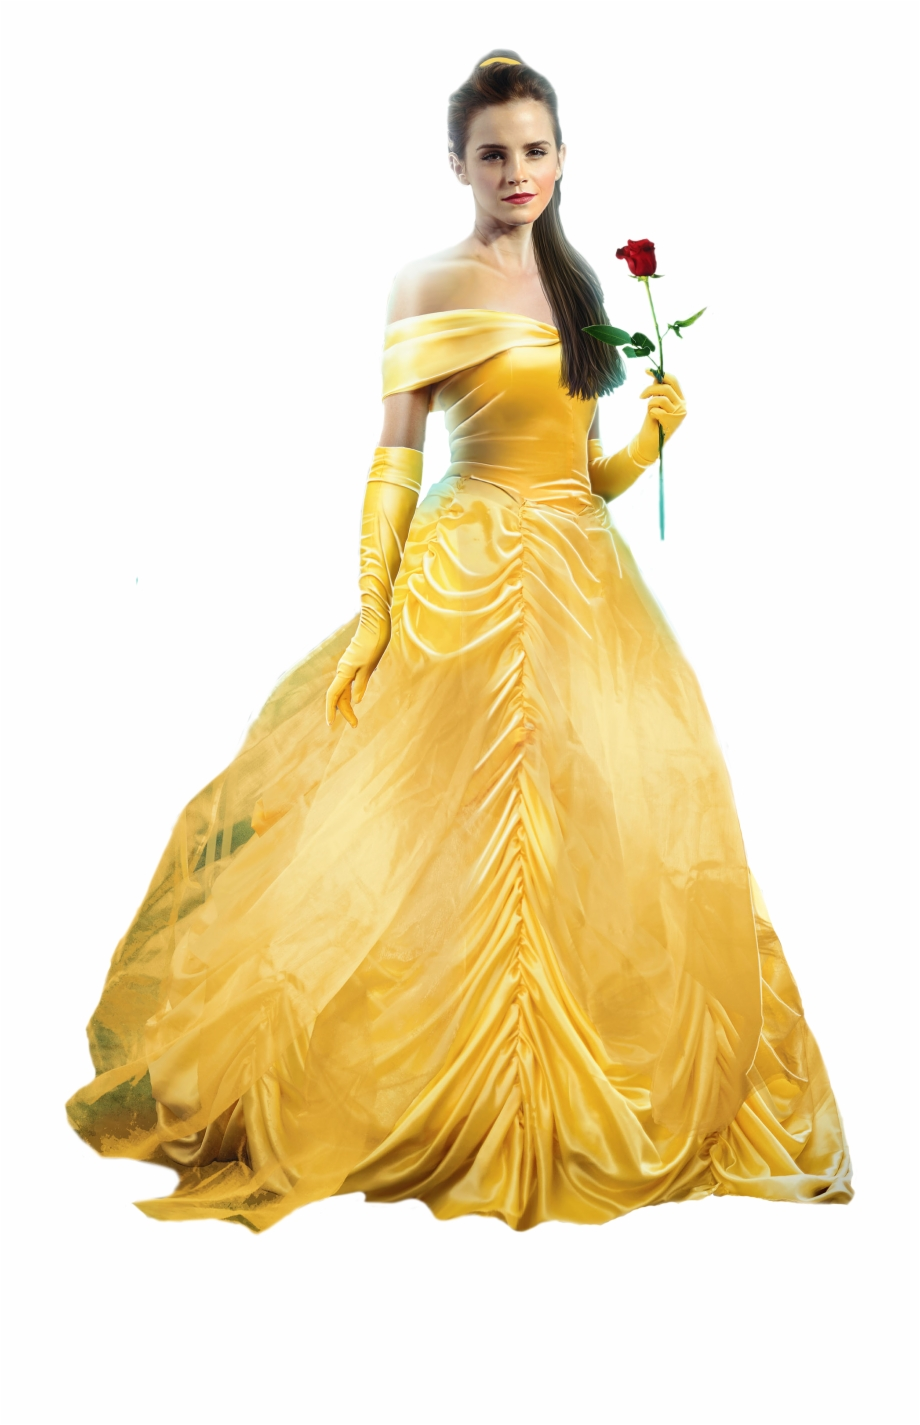 Belle Years Ago A Greedy Prince Was Cursed And Turned Beauty And The Beast 2017 Png Transparent Png Download 497551 Vippng